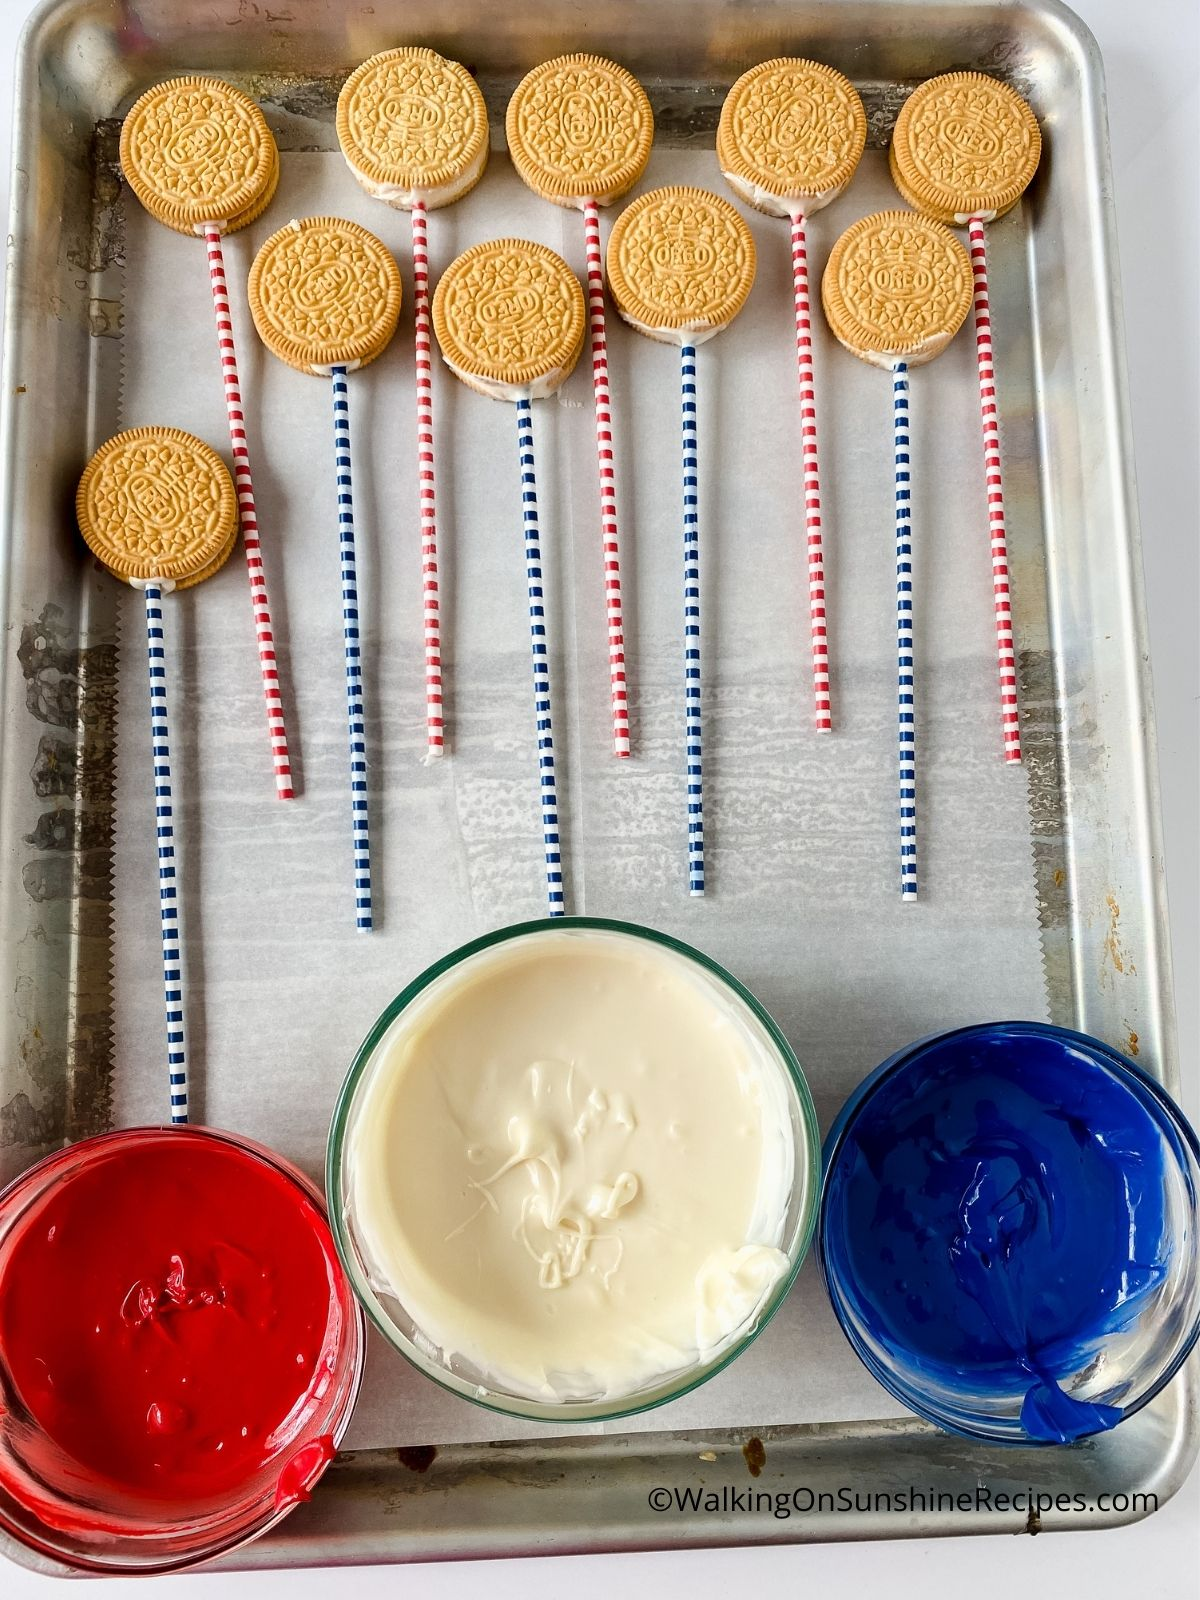 Melted Red, White and Blue Chocolate for Oreo Treats.